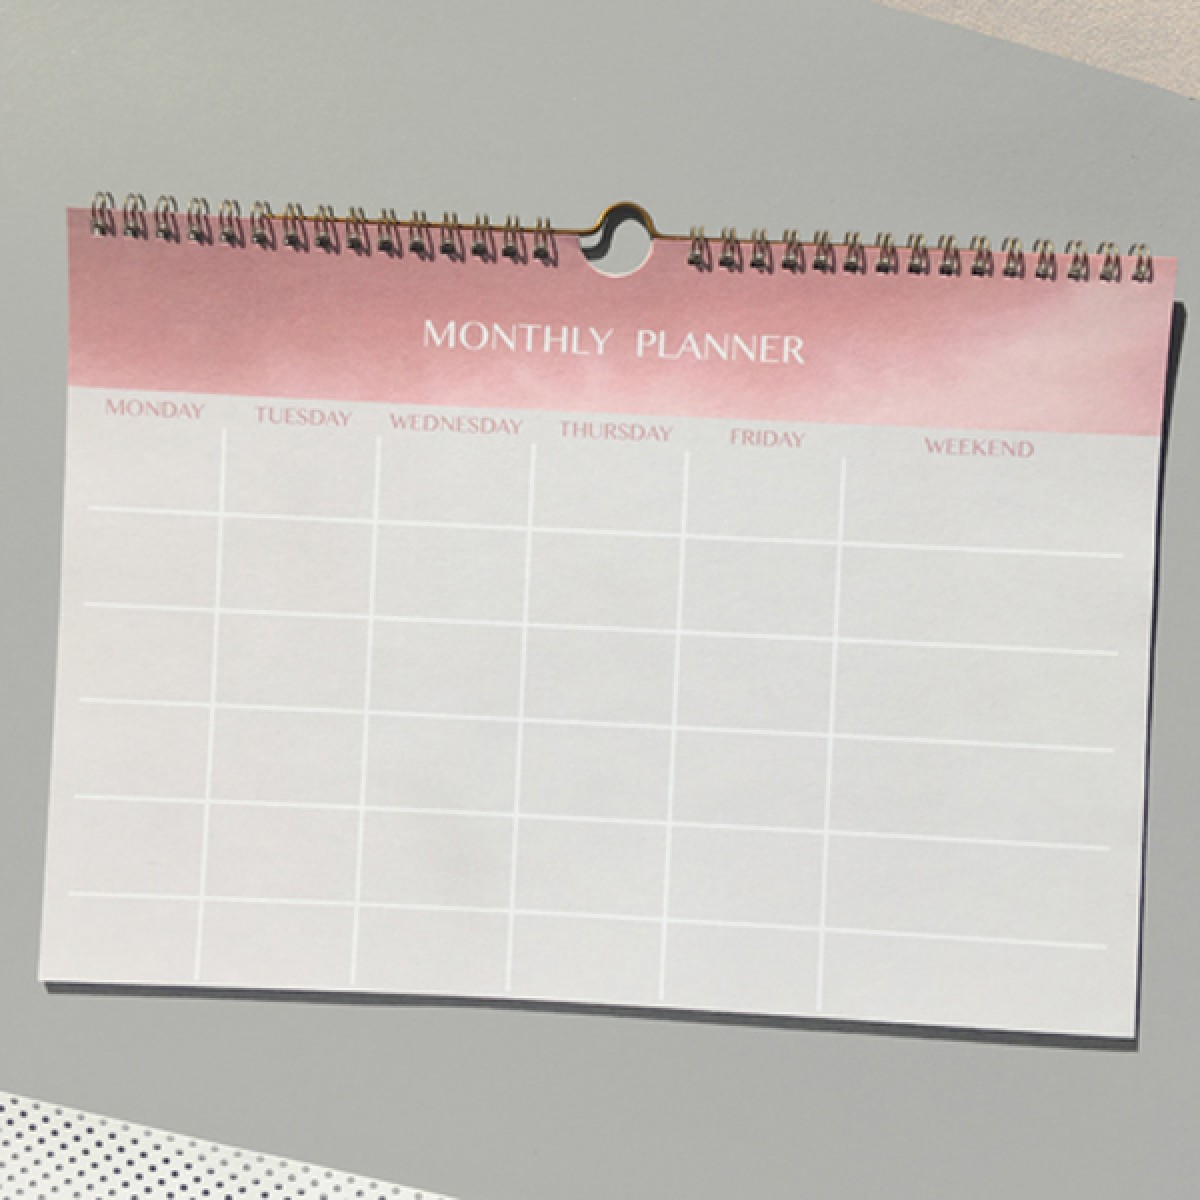 MONTHLY PLANNER - A4 WANDPLANER - ANNA-COSMA